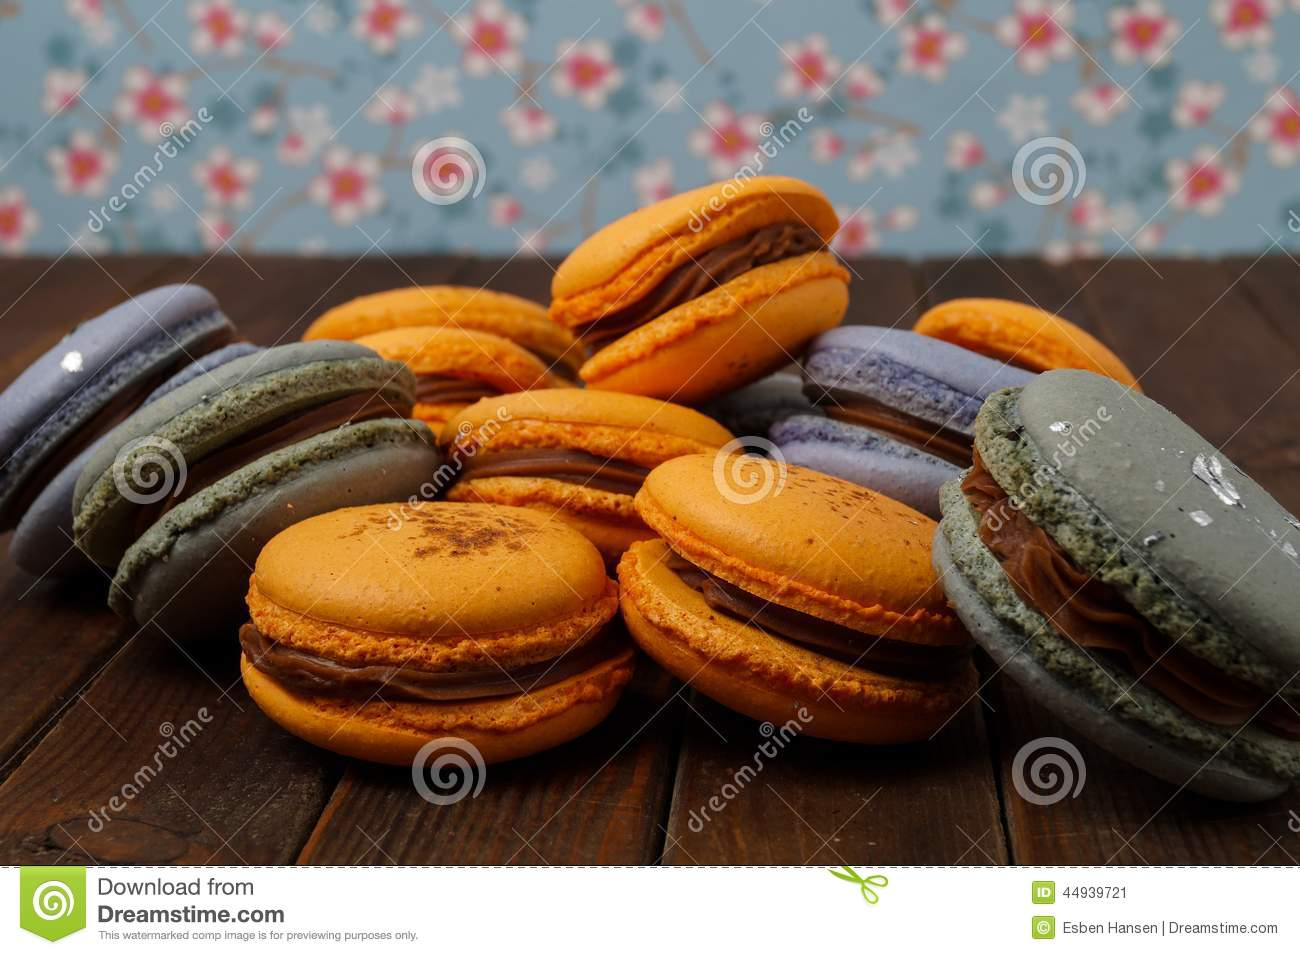 Pile of delicious blue and orange macaroons with ganache filling.